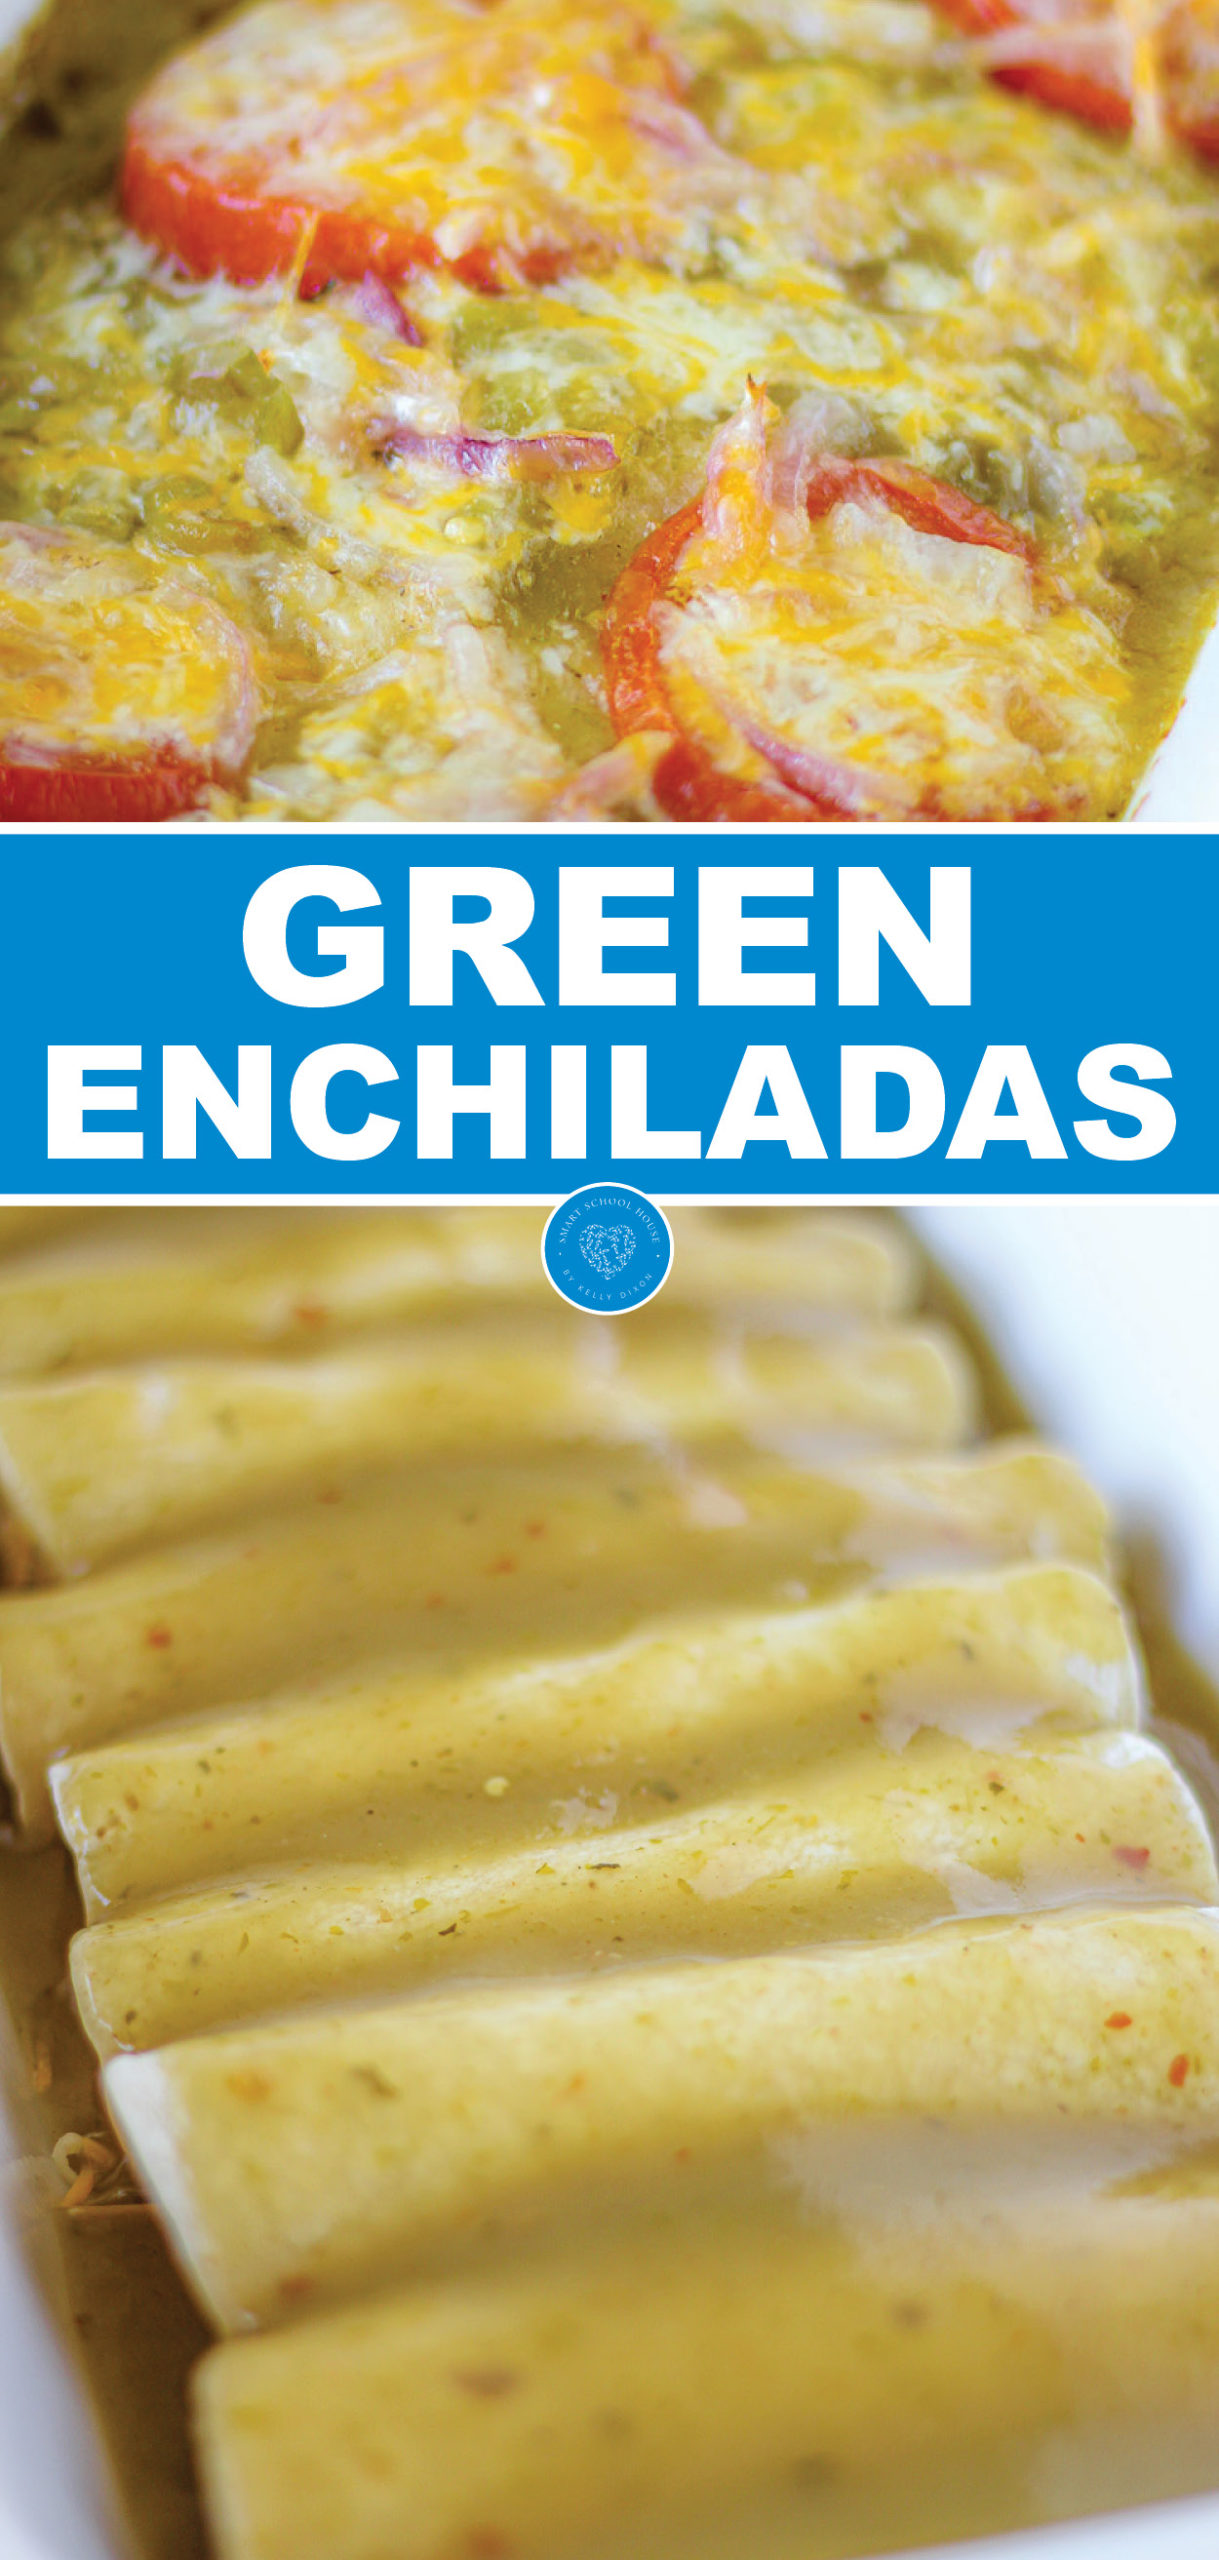 These cheese enchiladas are made even better with the addition of the green enchilada sauce. Comfort food at it's best!